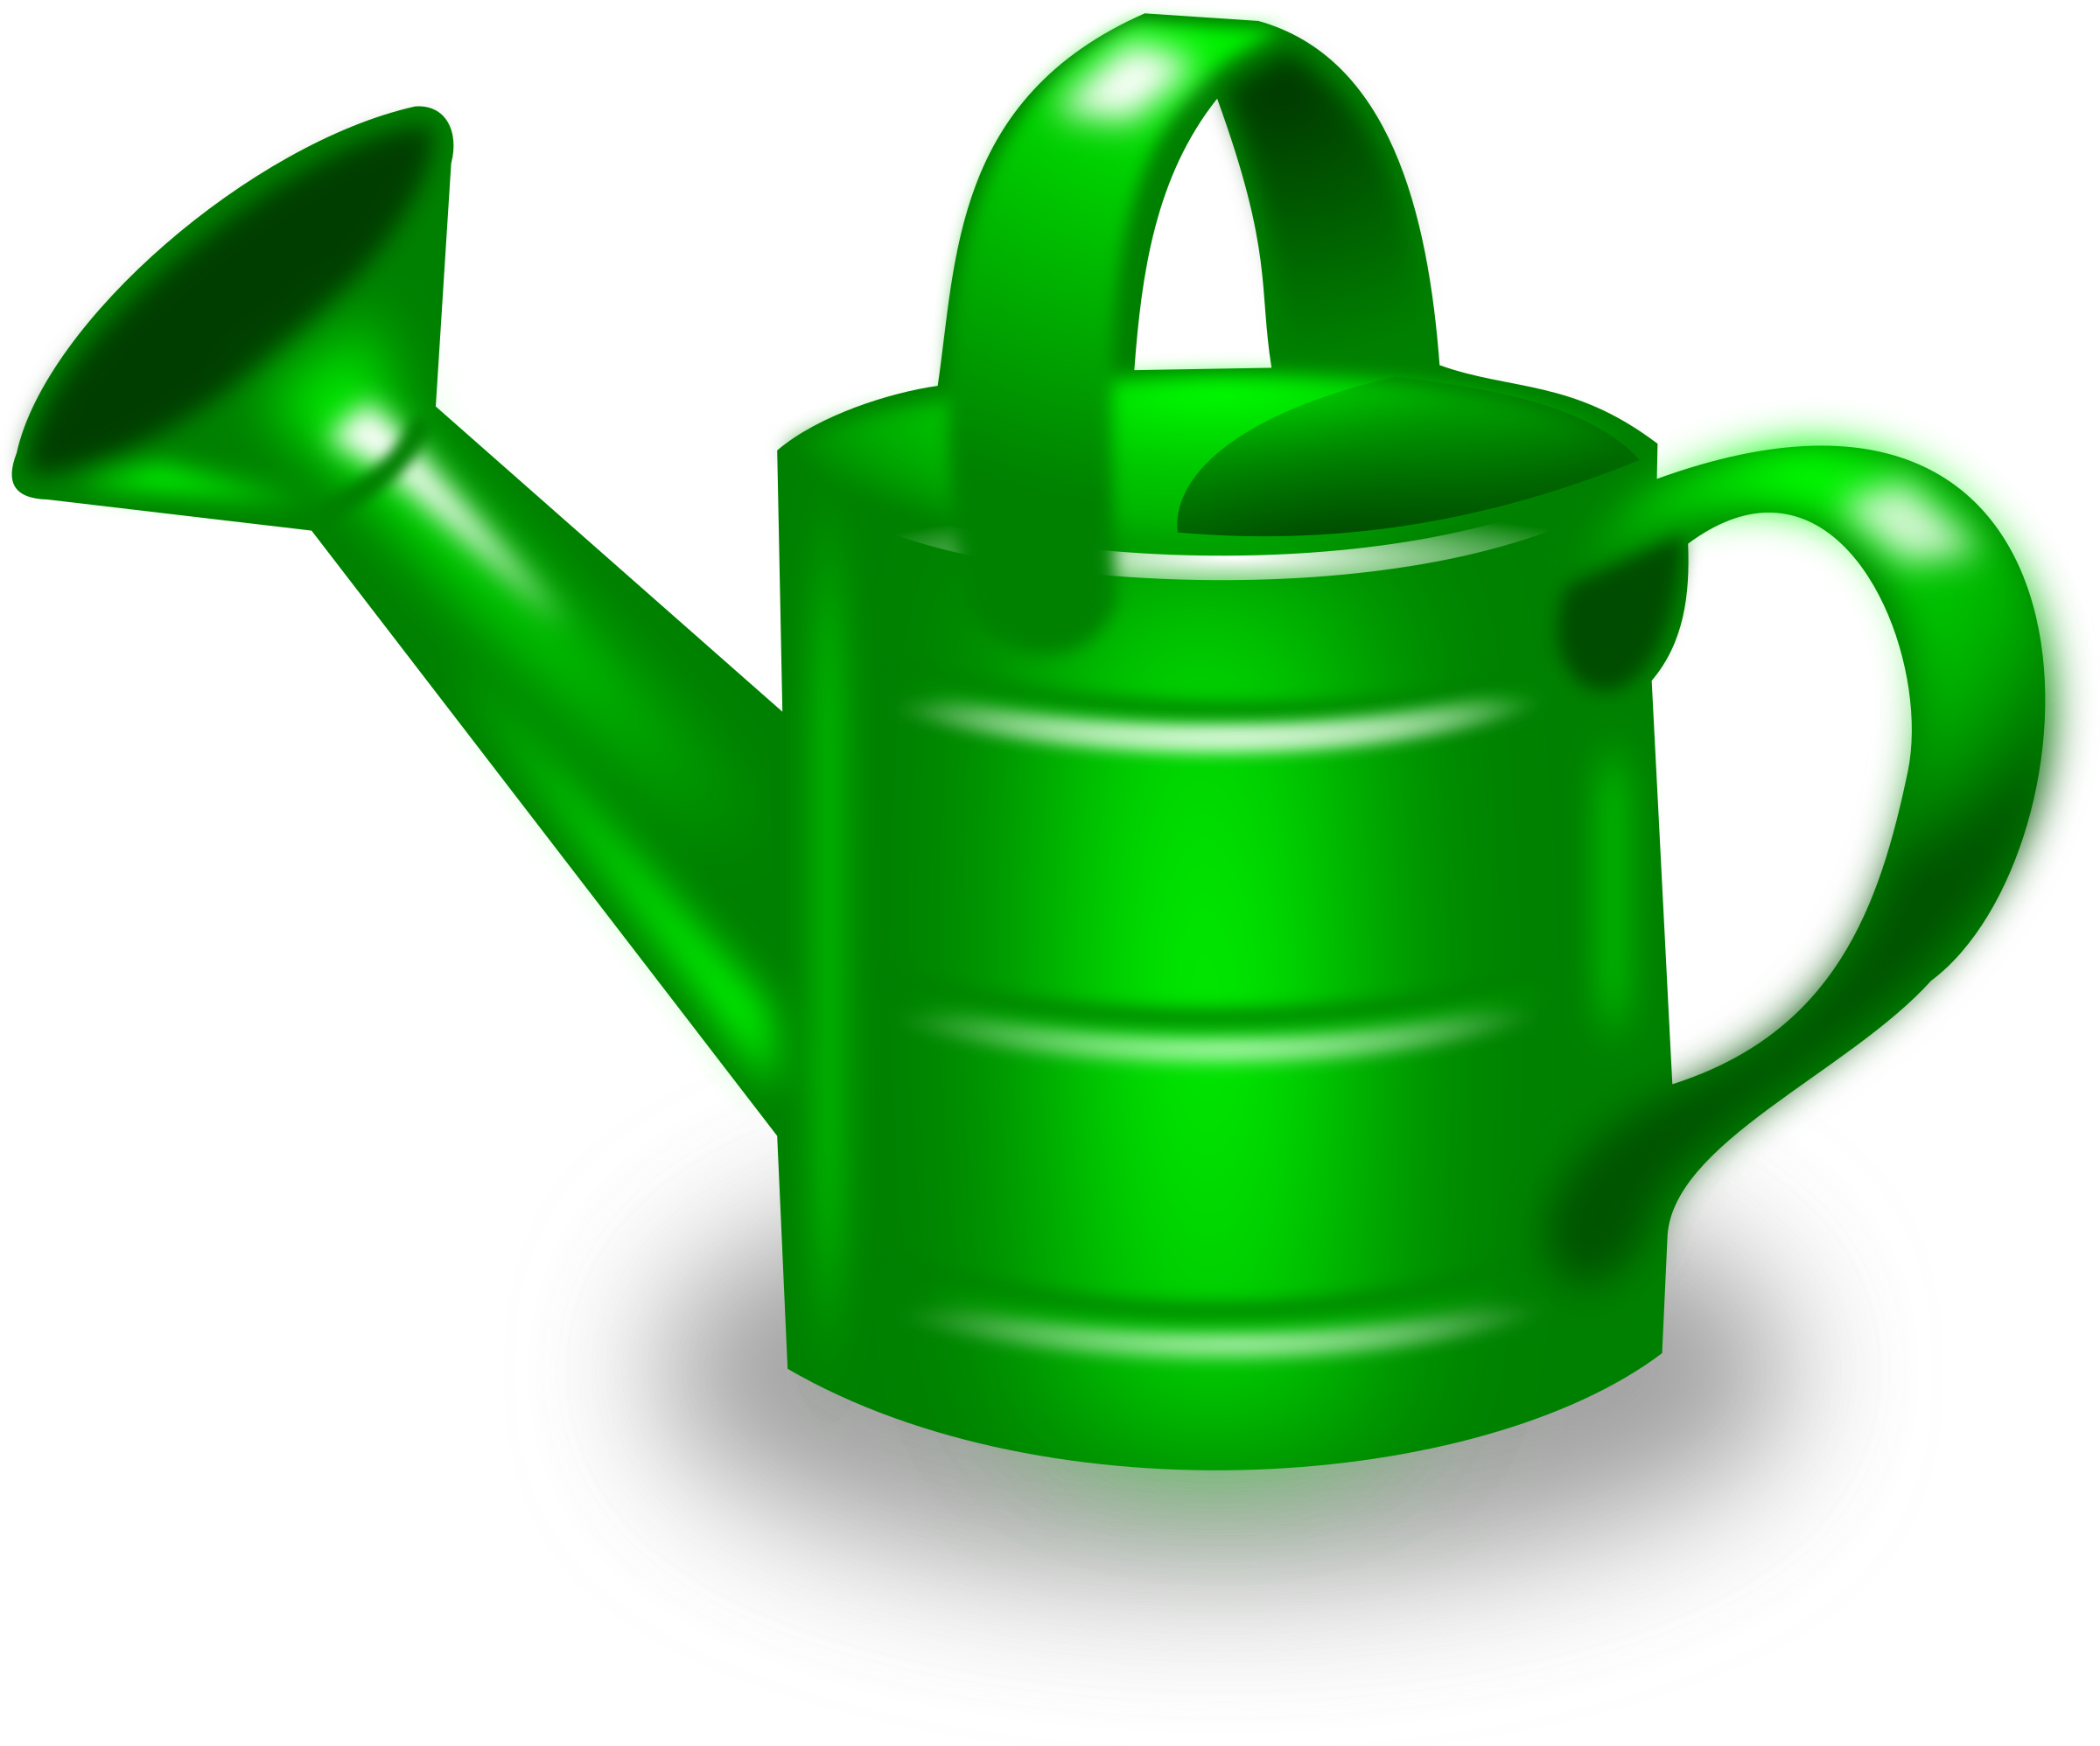 Watering Can Game Component Superb Quality By Lukeb Watering Can Clip Art Free Clip Art